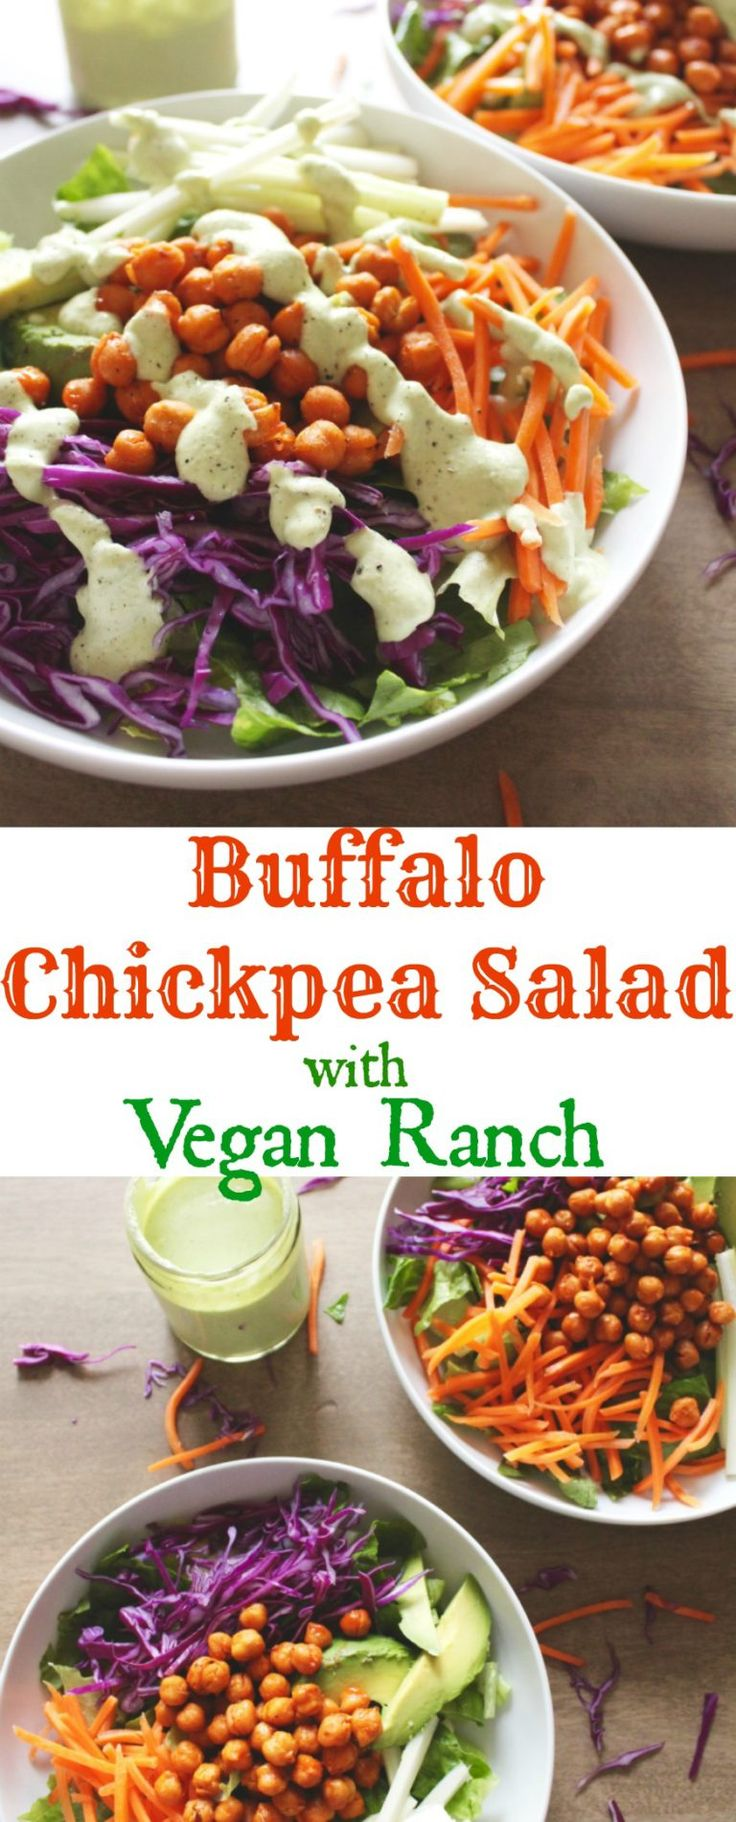 Buffalo Chickpea Salad with Vegan Ranch Dressing-love this recipe!